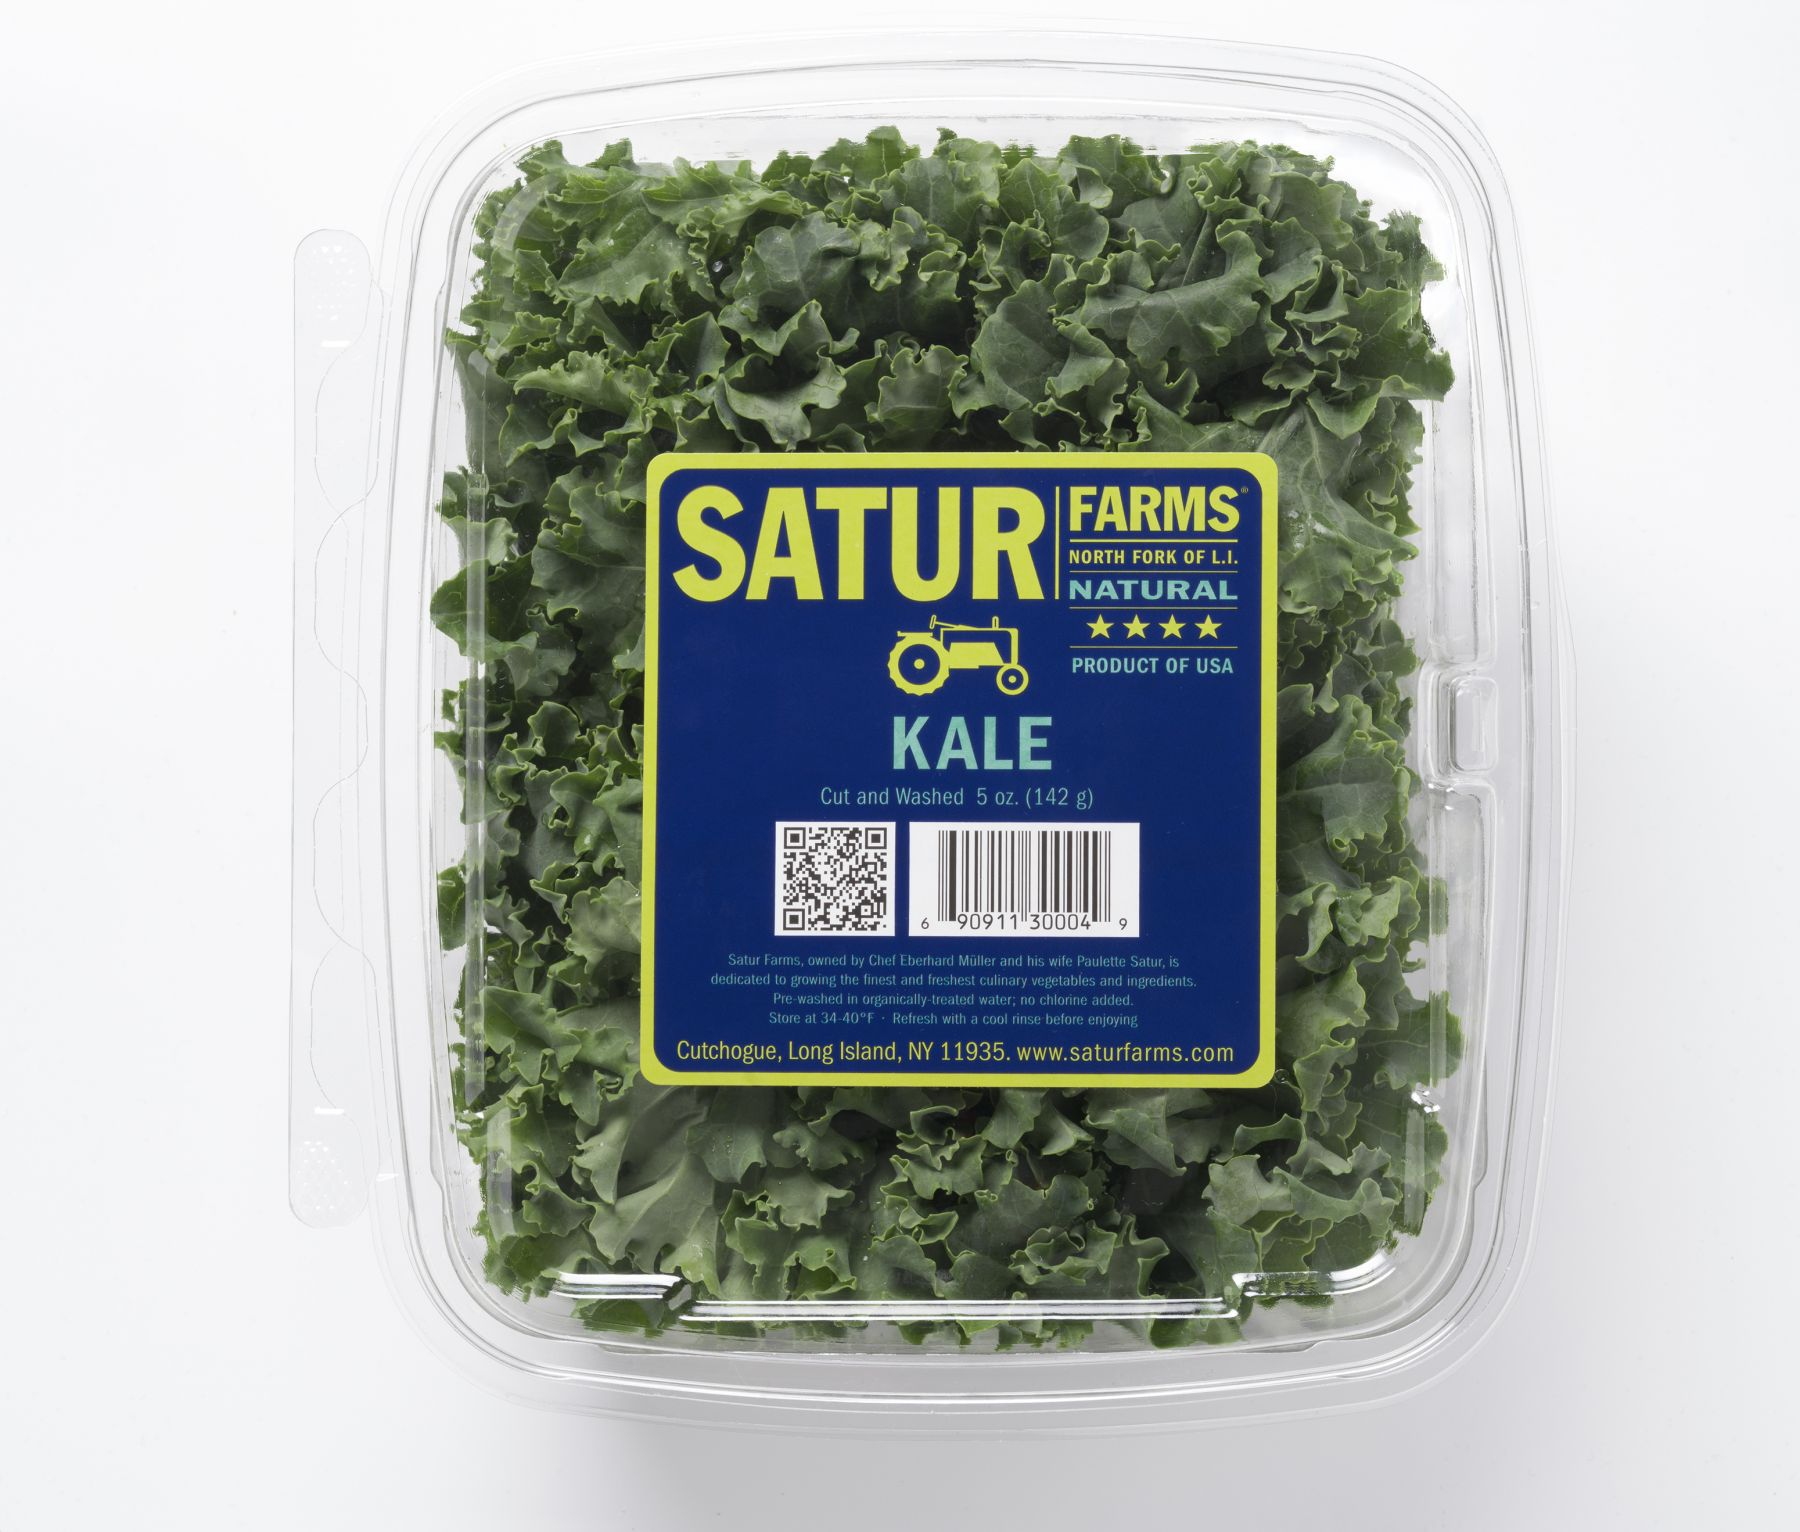 Kale Retail Clamshell Pack